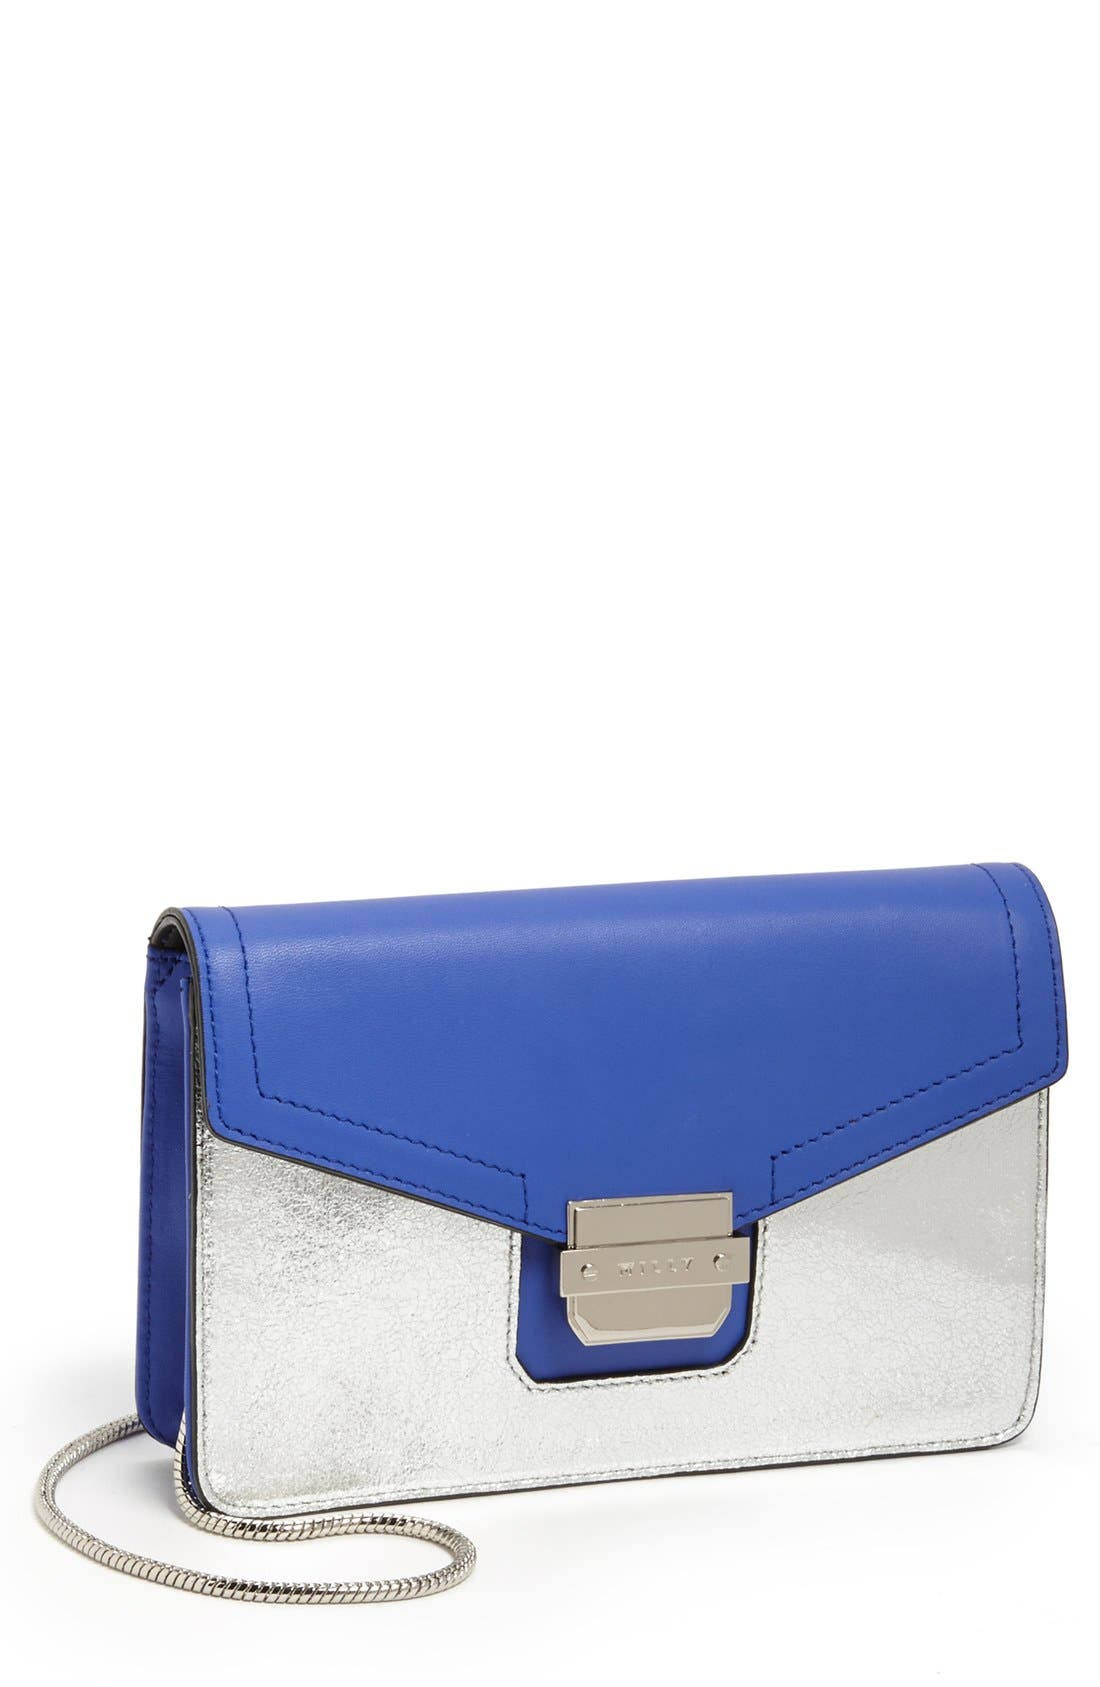 Main Image - Milly 'Colby - Mini' Leather Crossbody Bag